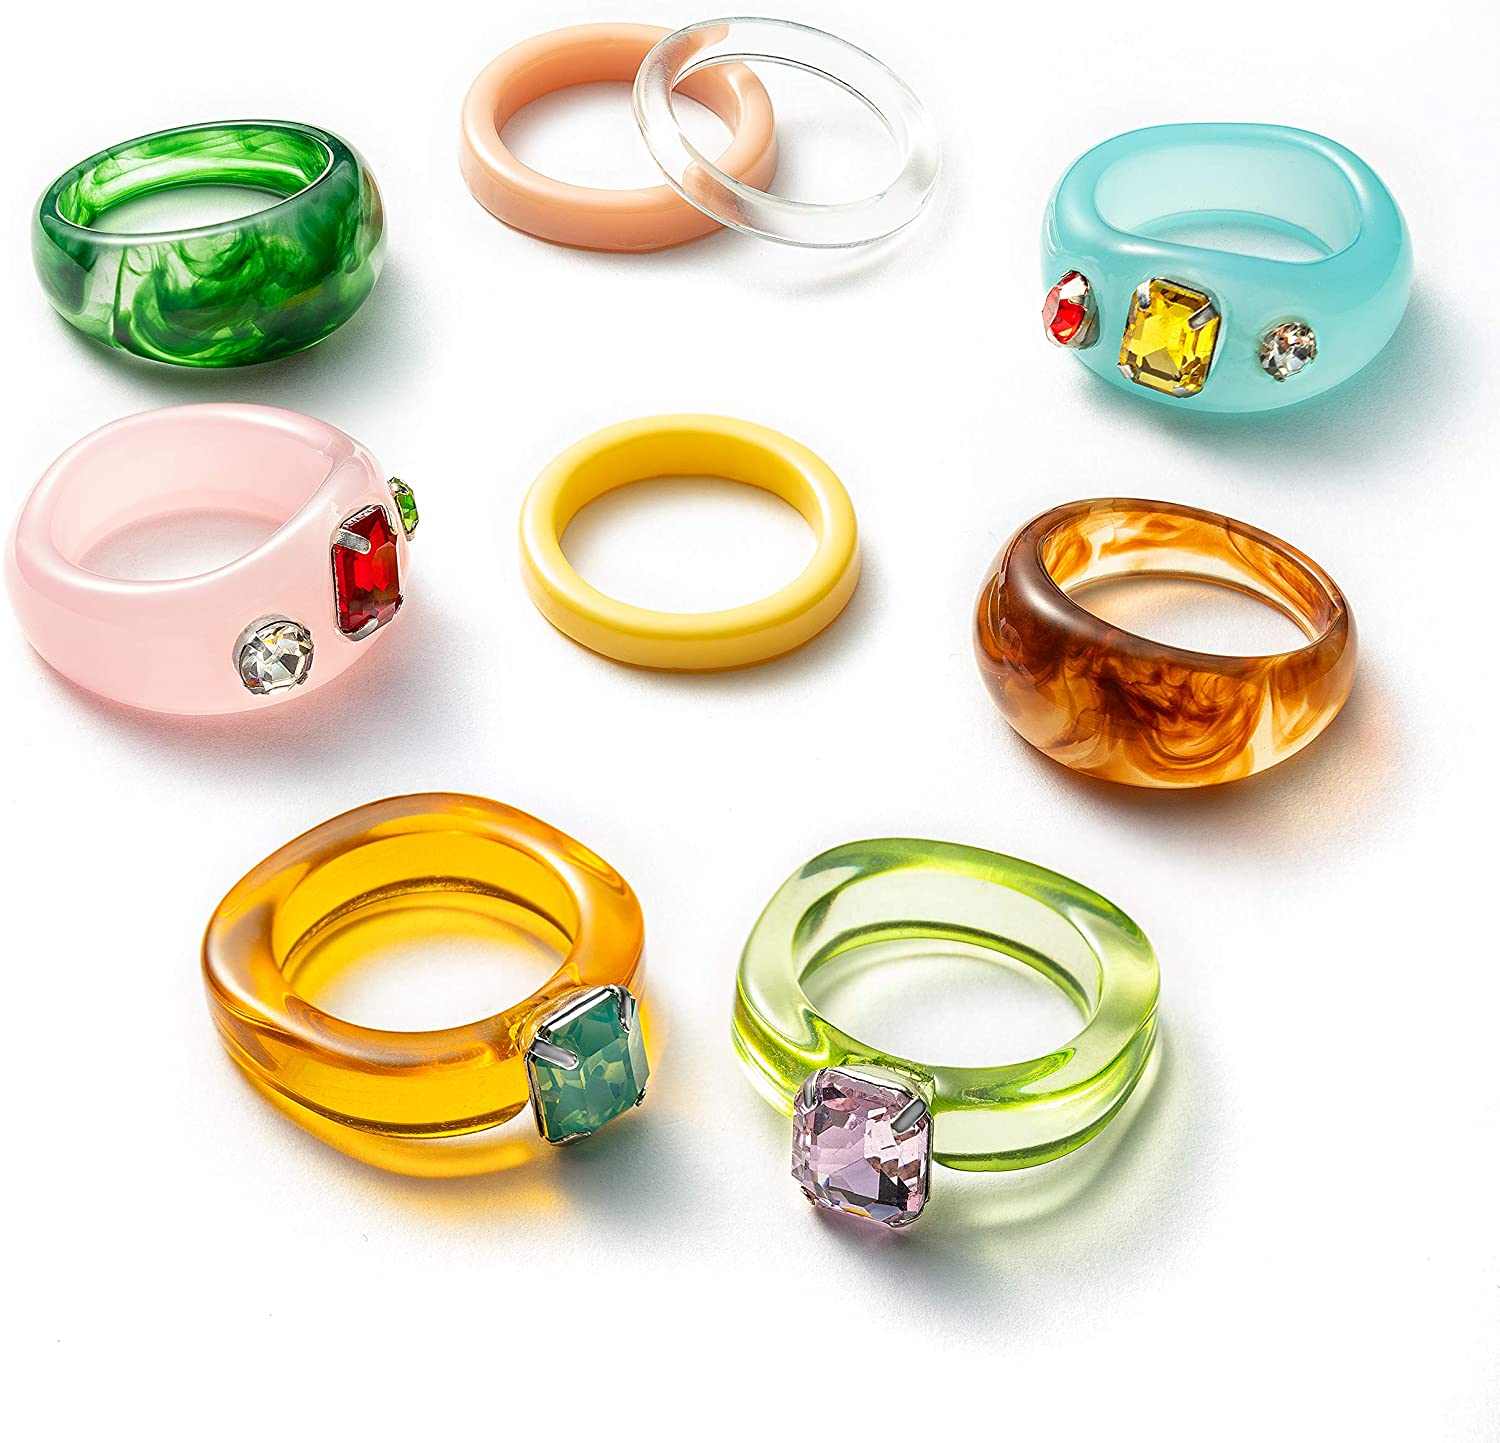 PANTIDE 9Pcs Retro Resin Acrylic Diamond Ring